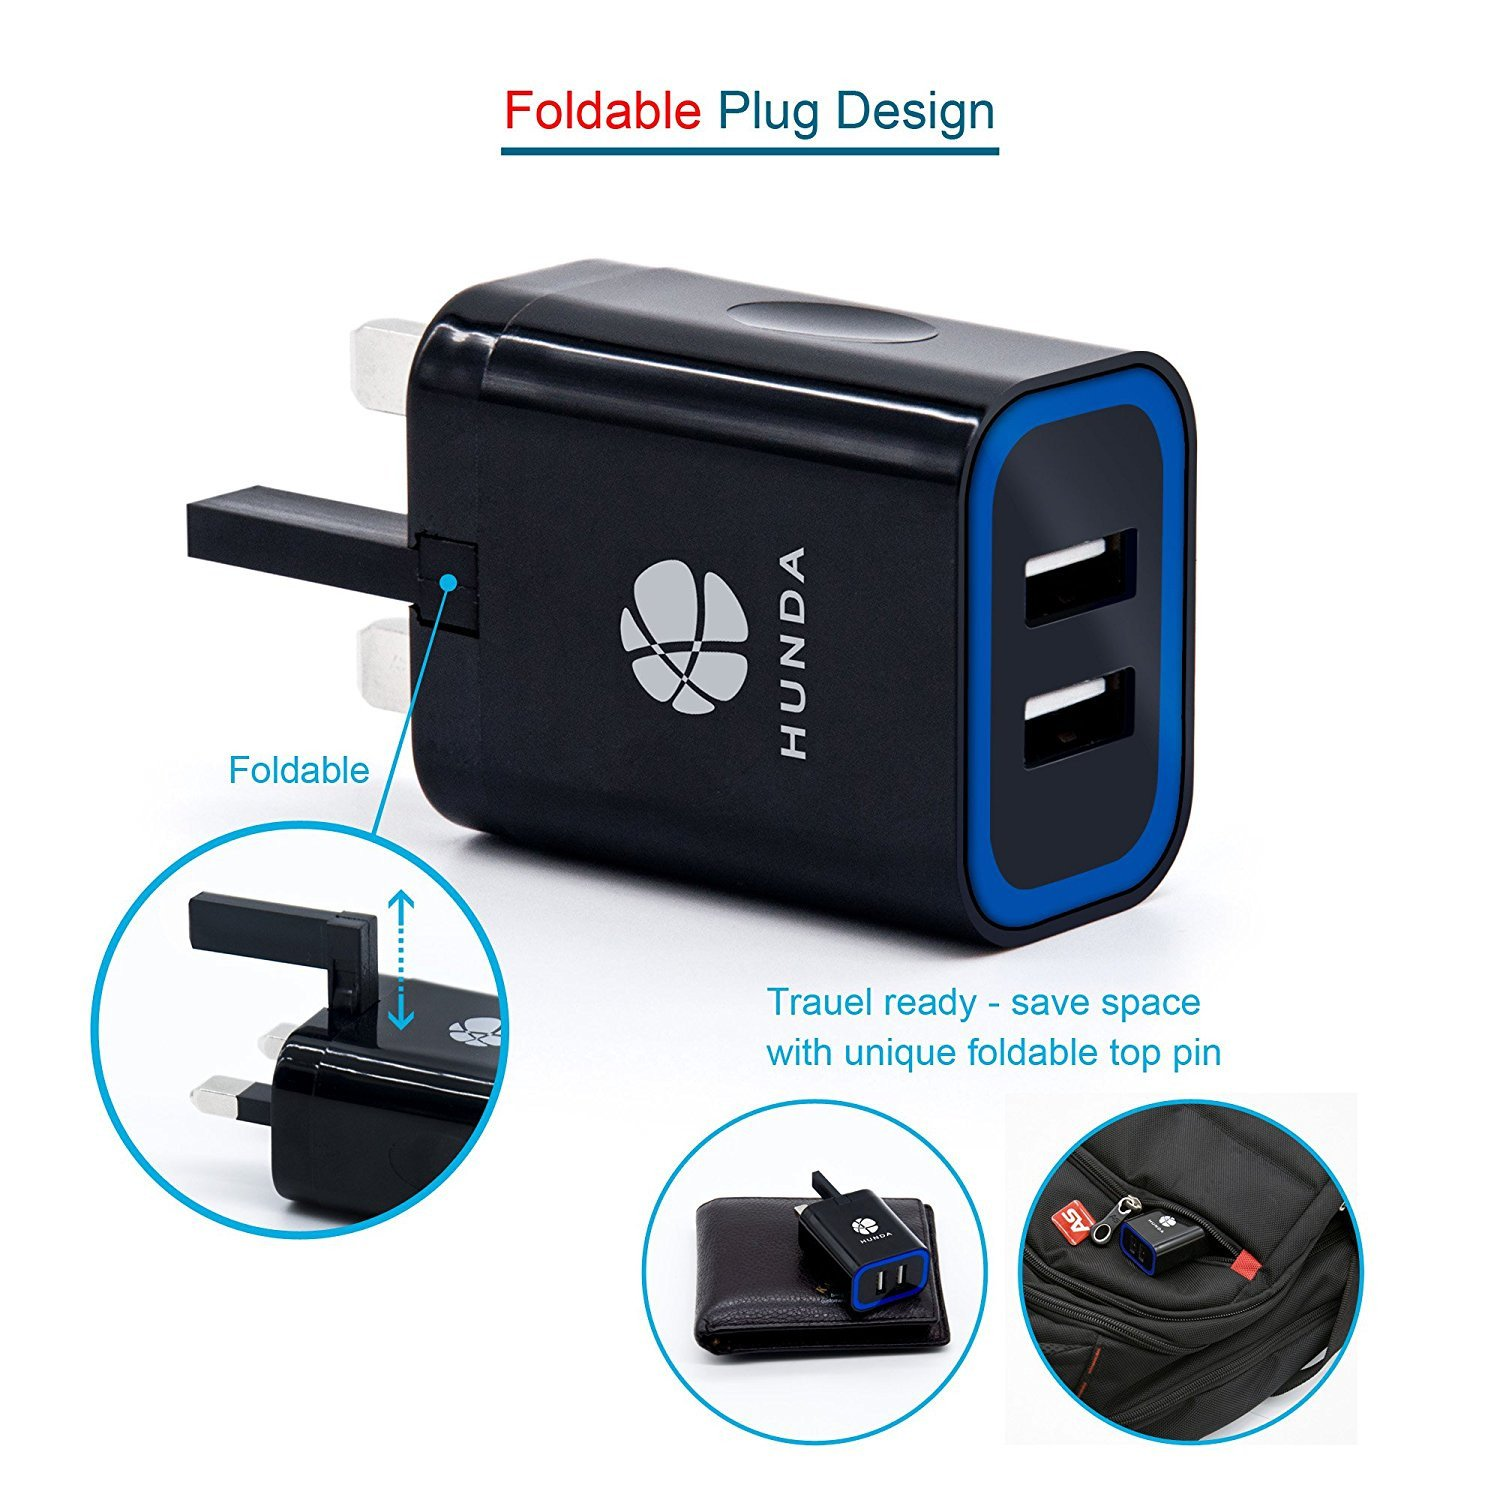 USB Charger Plug Hunda 3.1A 2-Port Mains Wall Charger with Smart IC UK Plug (Travel Adapter, Fast and Safe) for iPhone iPad Samsung HTC Kindle LG Smartphones Tablet & USB Socket Devices